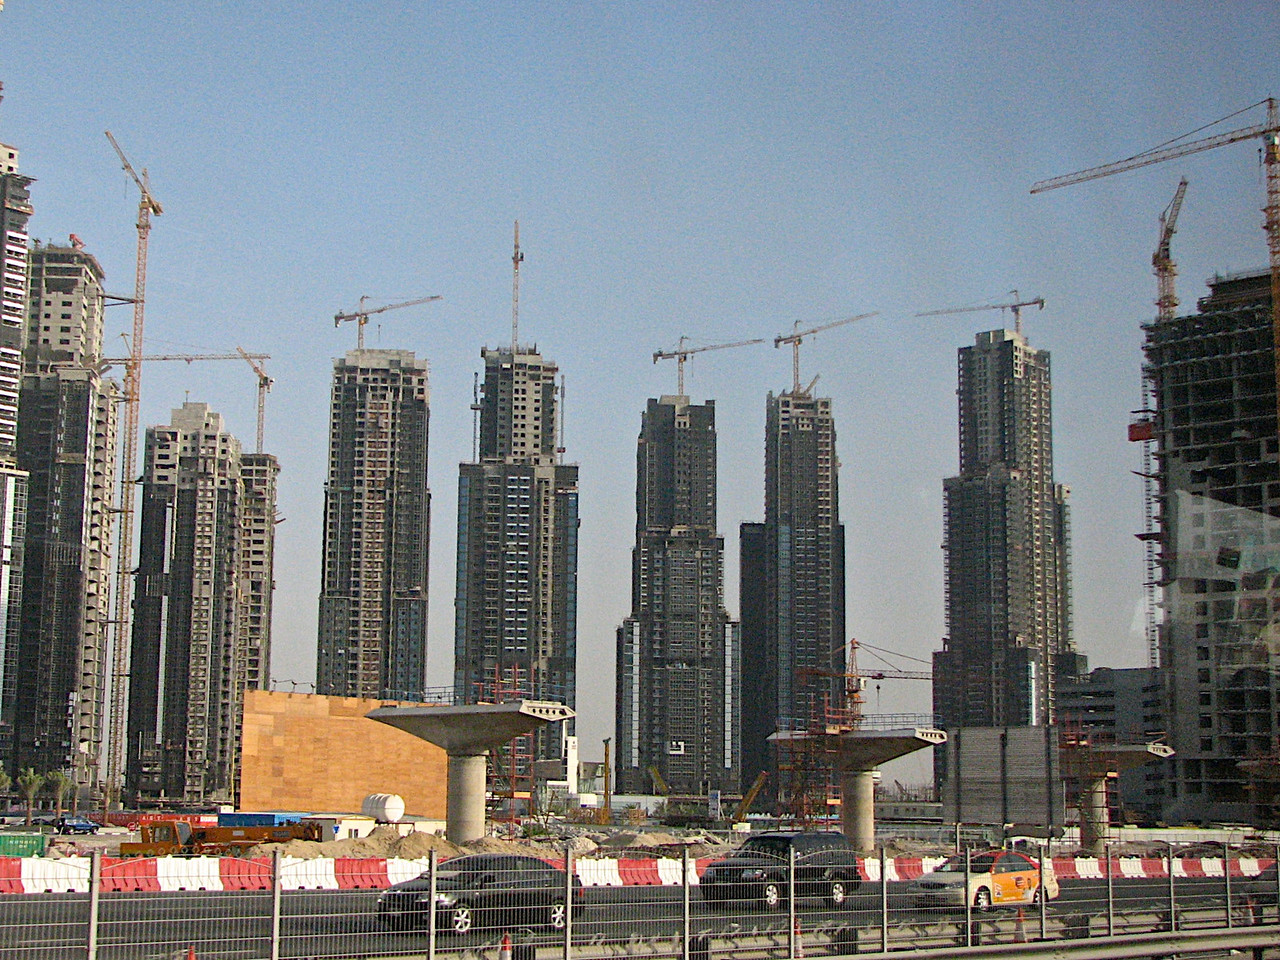 Here's the buildings going up in just one small section of the city.